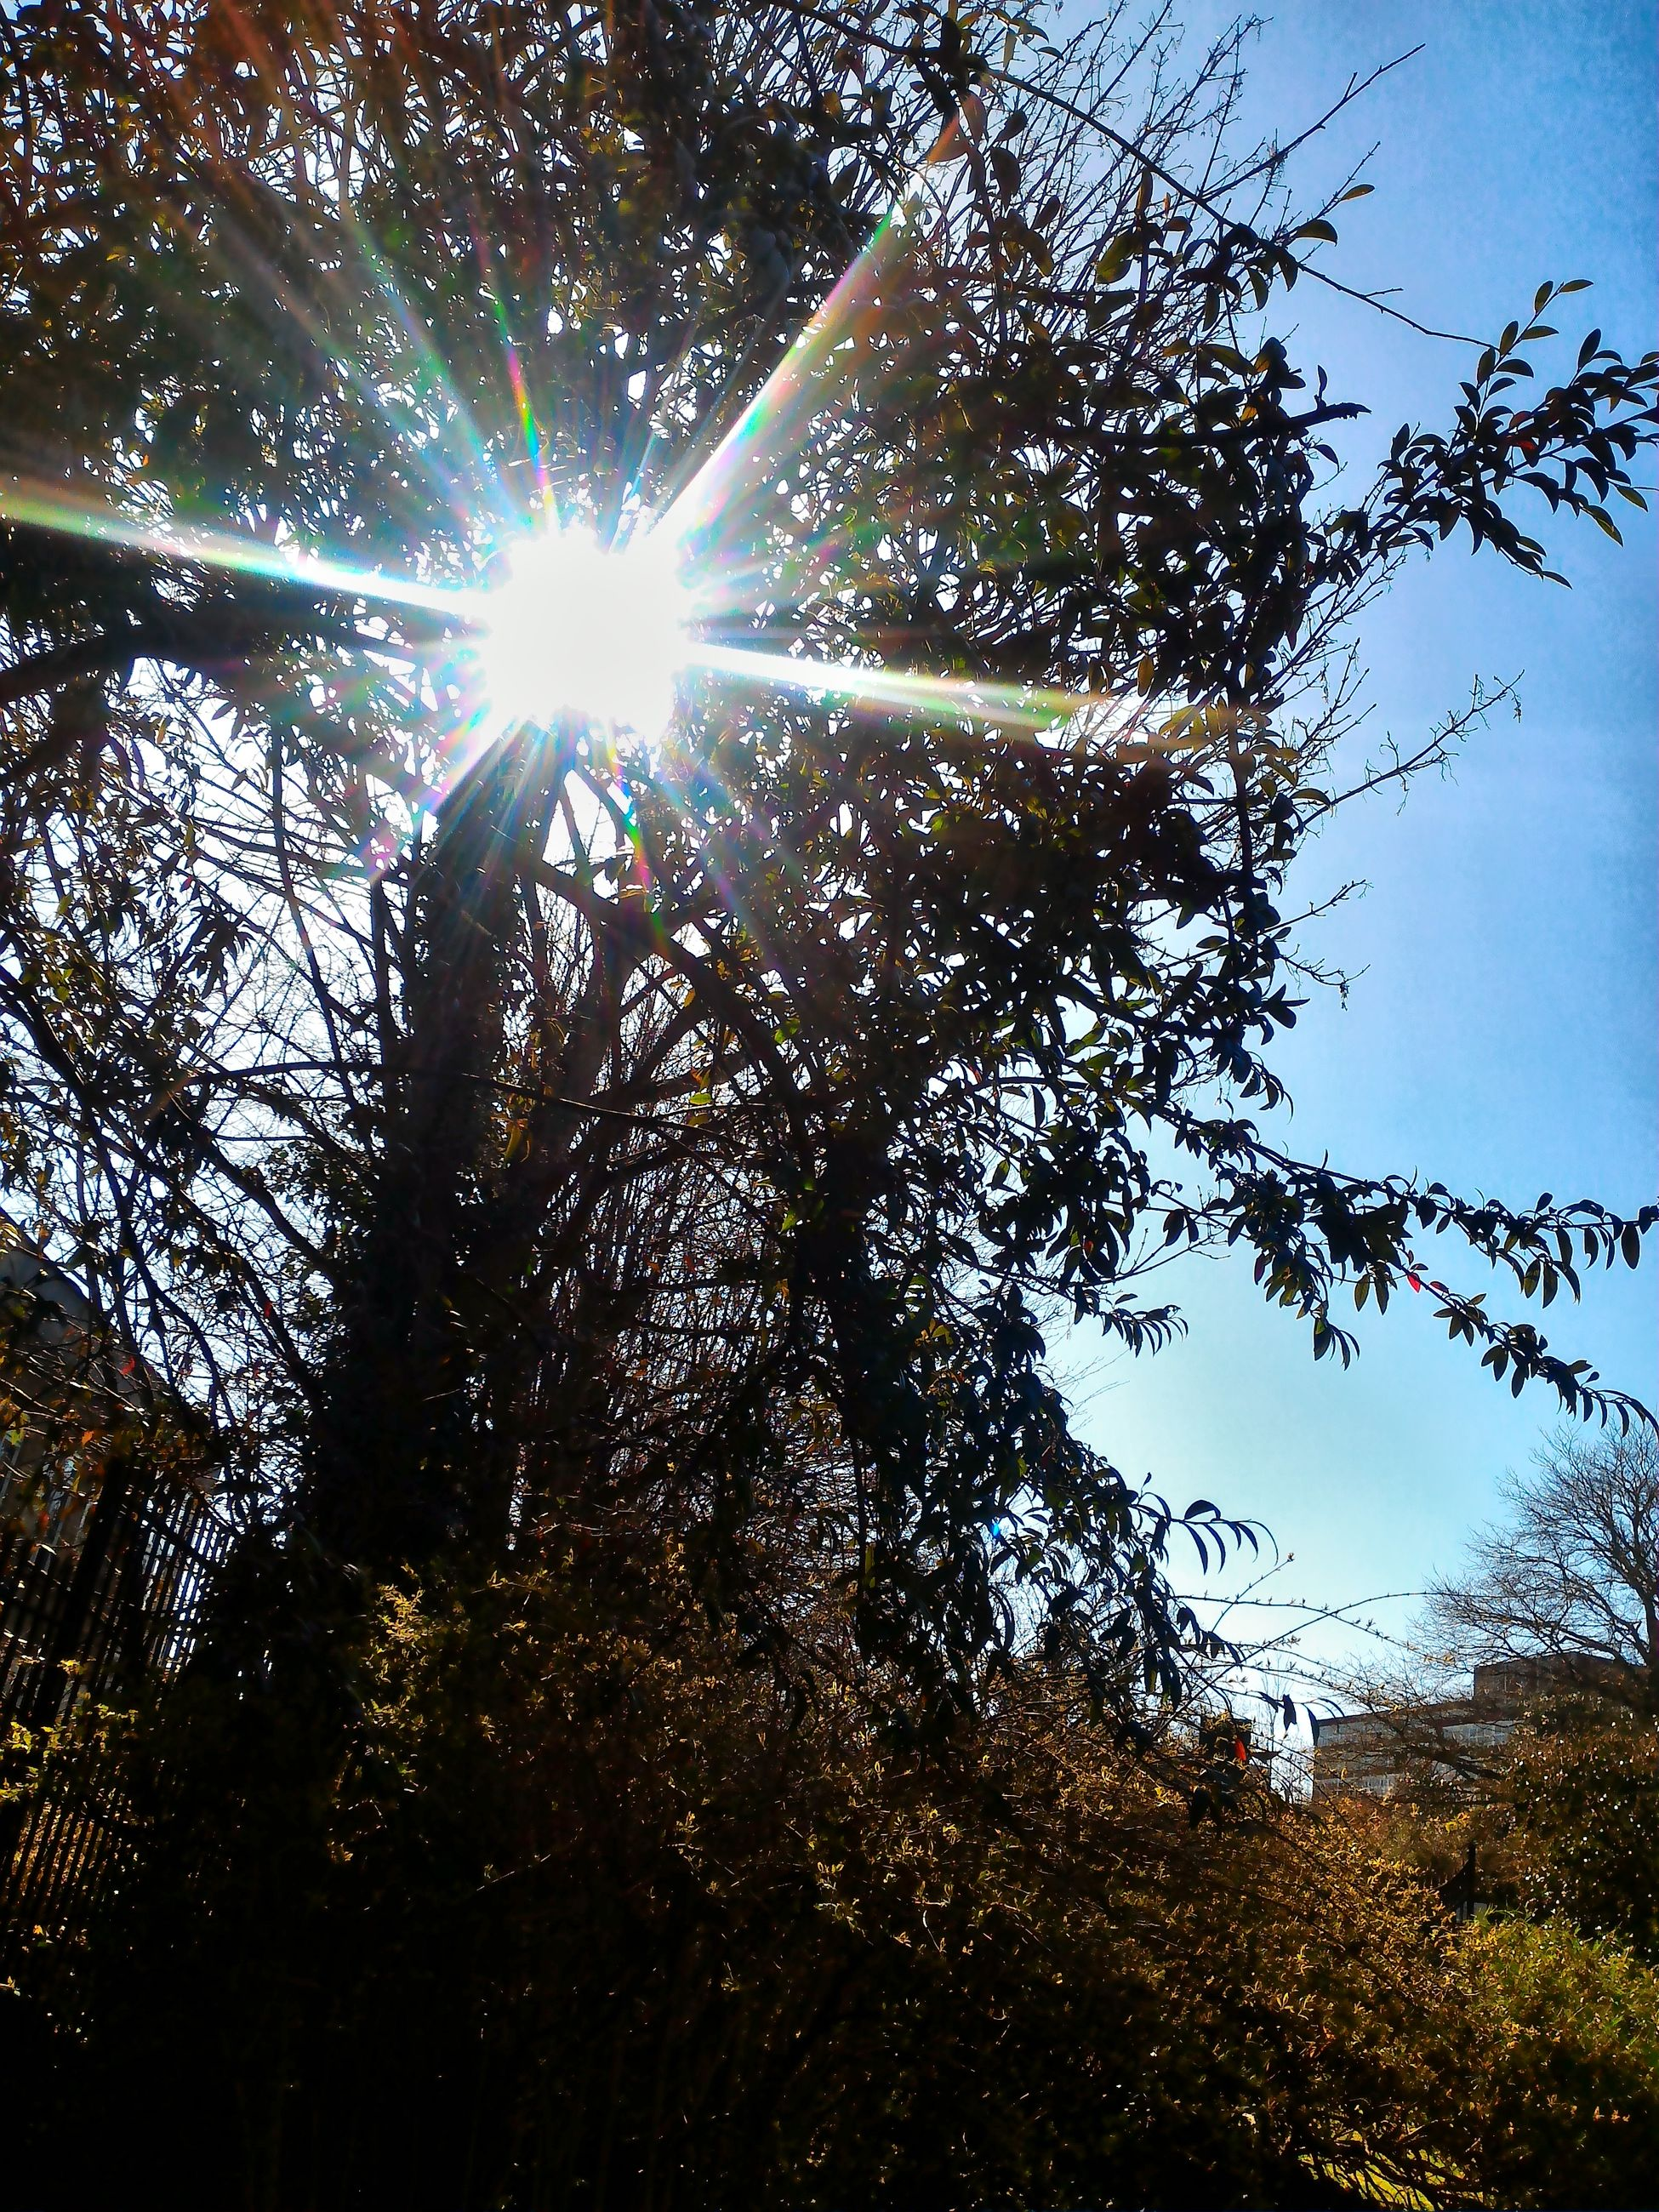 sun, sunbeam, low angle view, lens flare, sunlight, tree, bright, back lit, nature, sunny, growth, sky, streaming, shiny, clear sky, beauty in nature, tranquility, silhouette, glowing, branch